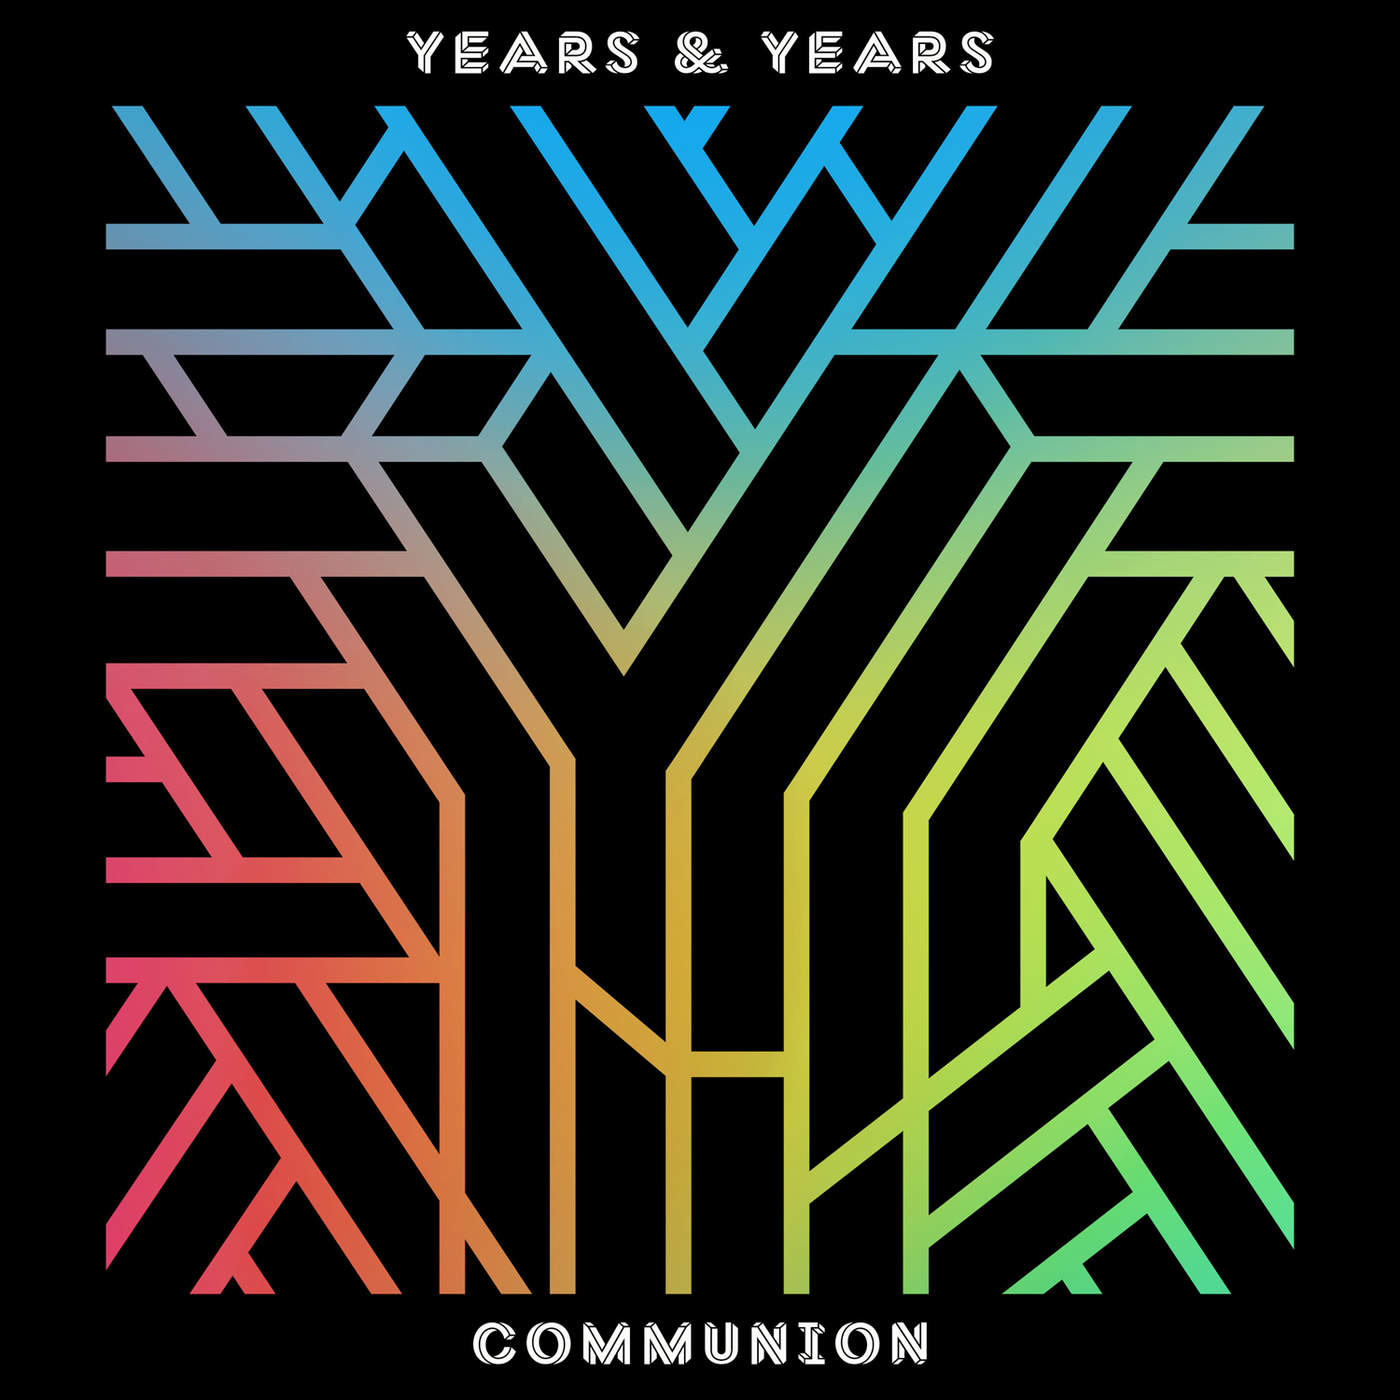 Years & Years — Communion [Polydor][4728041](2015)